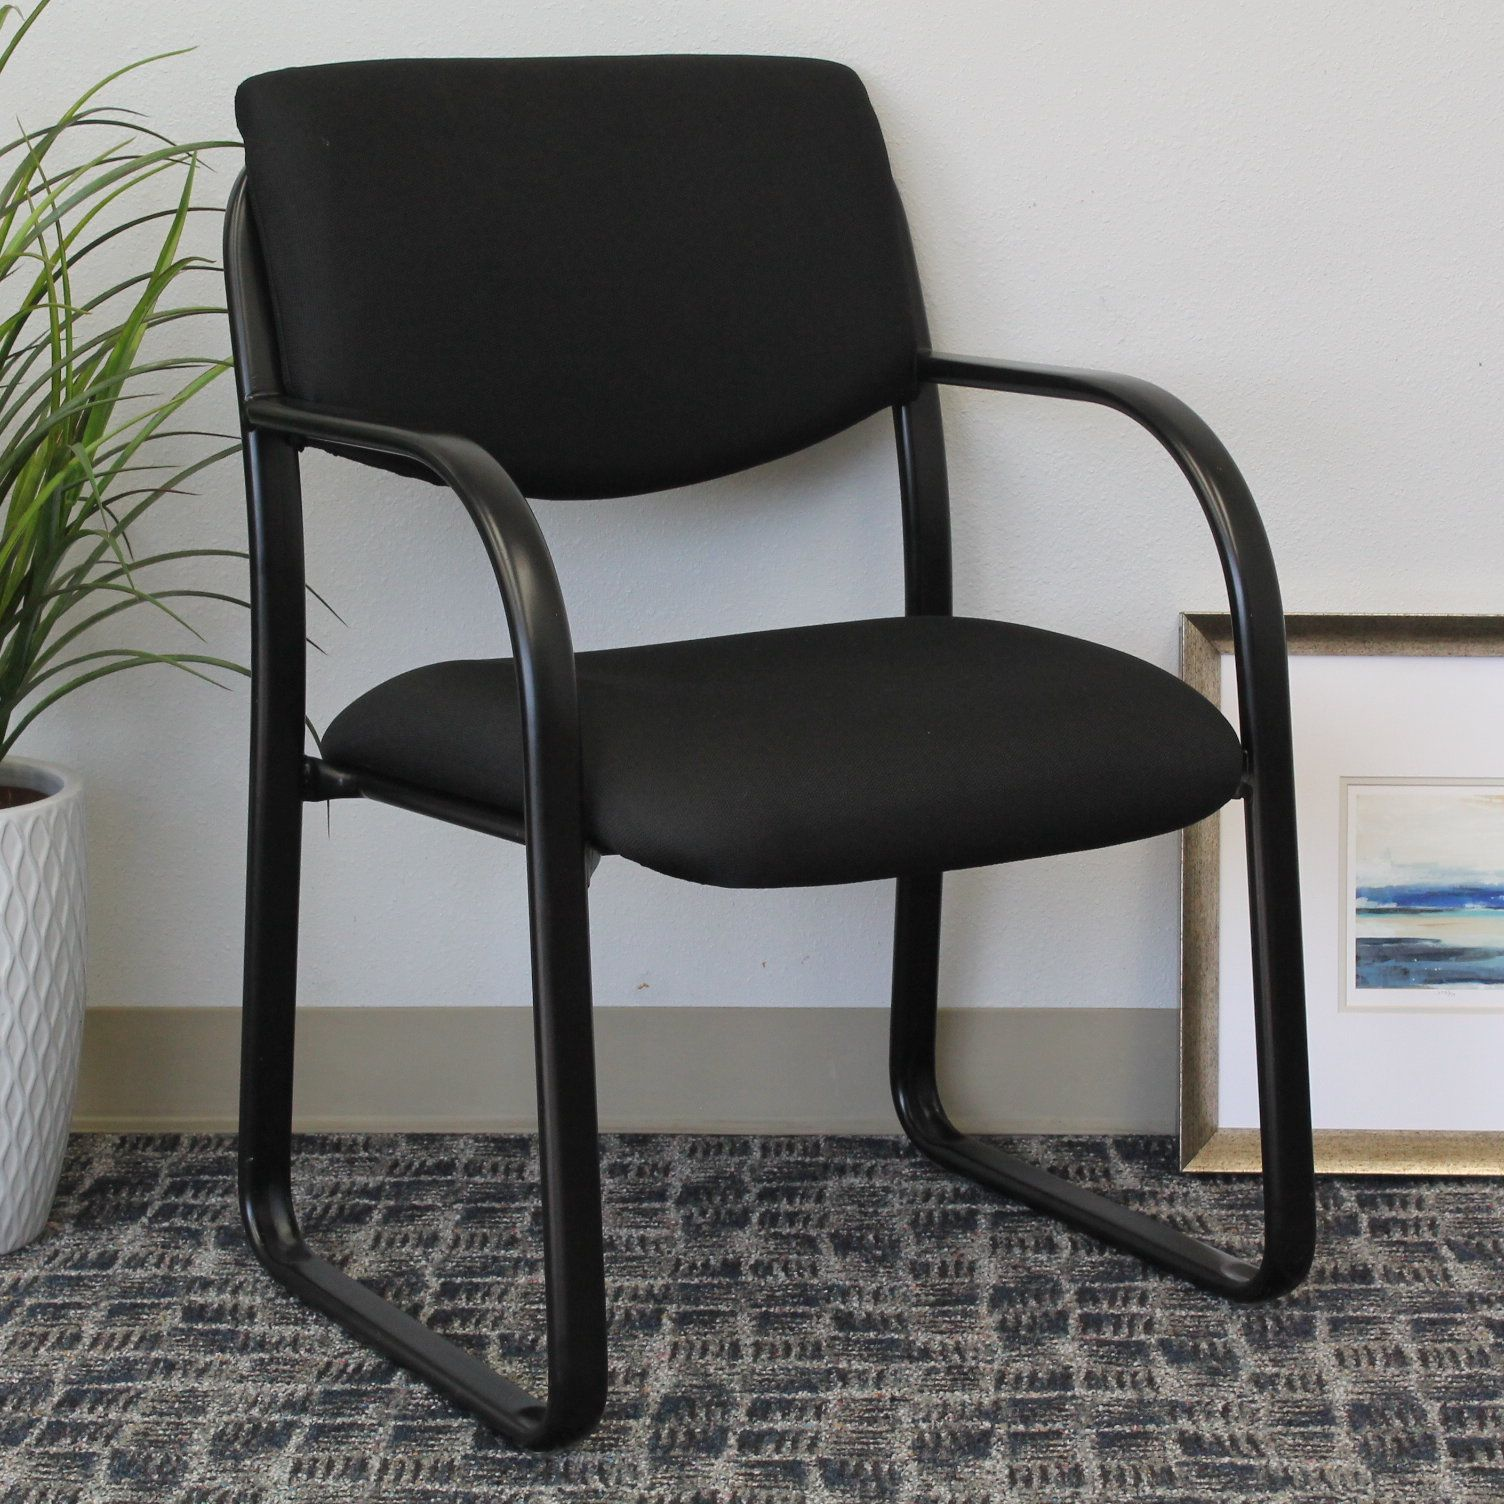 Annalee guest chair guest chair office guest chairs